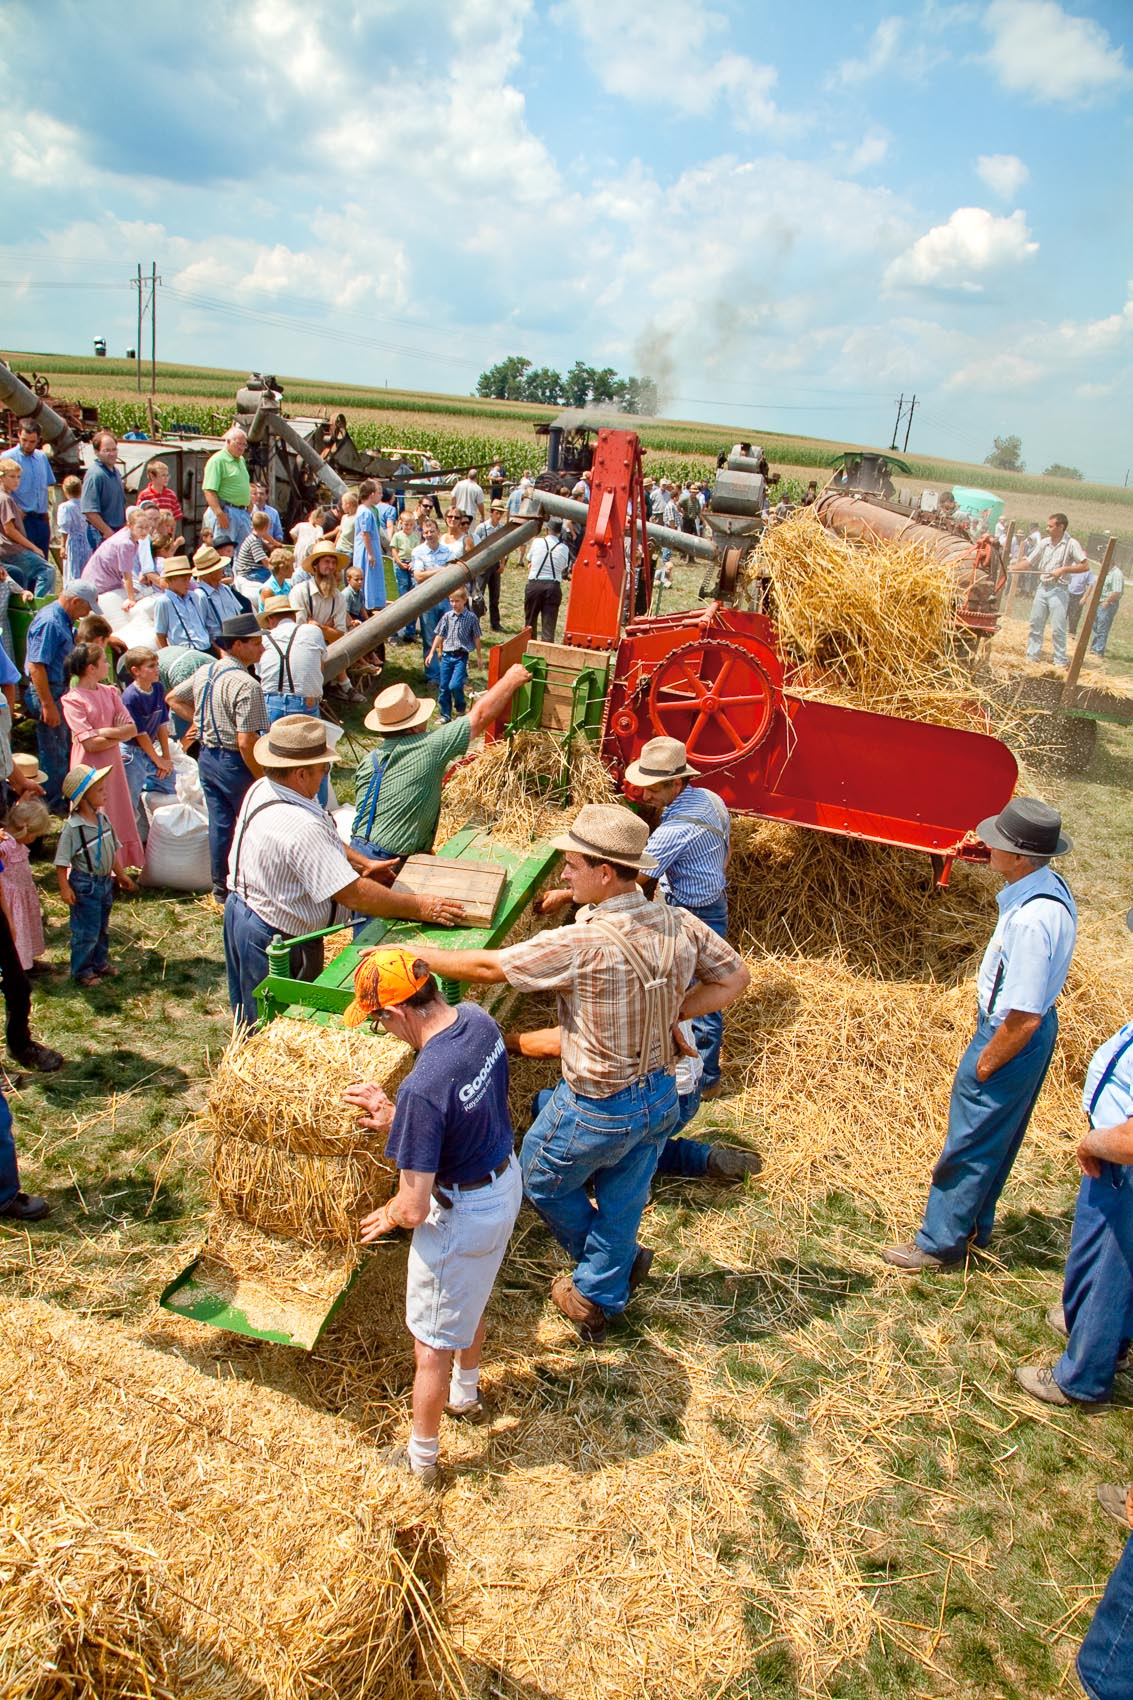 Demonstration of Baling Straw at the Shirktown Threshermans Reunion in New Holland, PA | J. Eldon Zimmerman Photography | Lancaster, PA Commercial Photographer